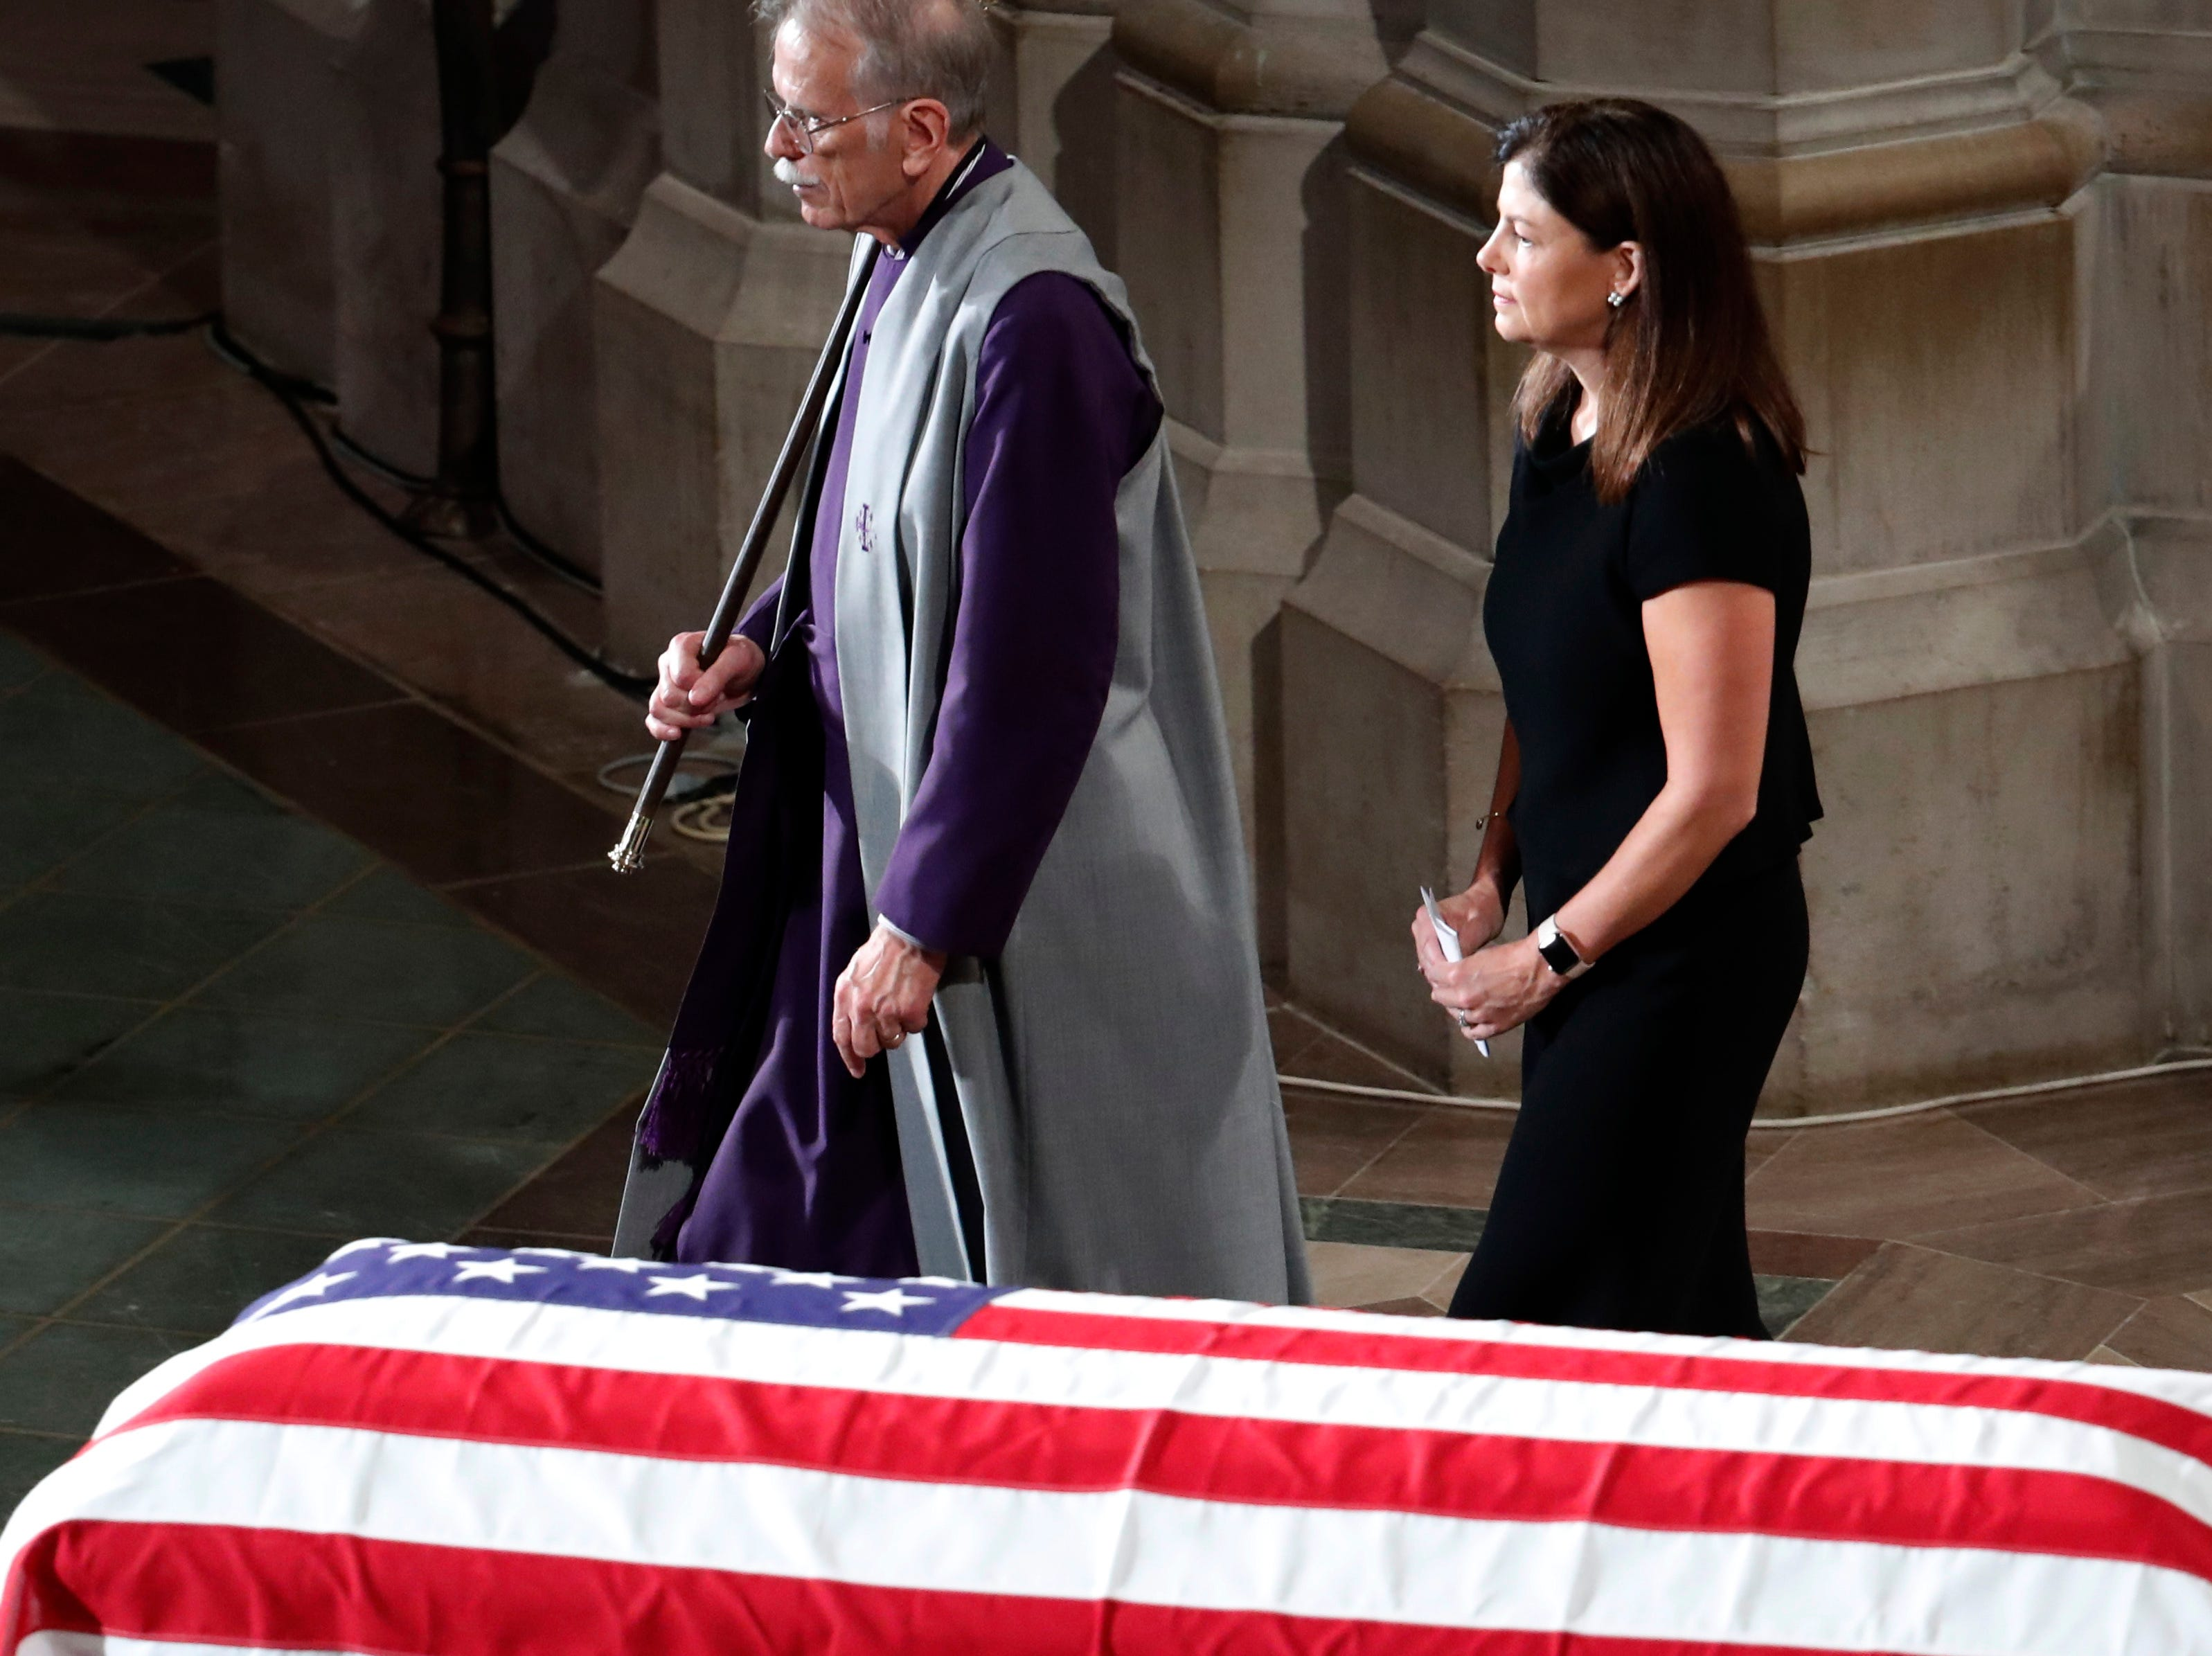 Former New Hampshire Sen. Kelly Ayotte walks after reading scripture at a memorial service for Sen. John McCain, R-Ariz., at Washington National Cathedral in Washington, Saturday, Sept. 1, 2018. McCain died Aug. 25, from brain cancer at age 81. (AP Photo/Pablo Martinez Monsivais)